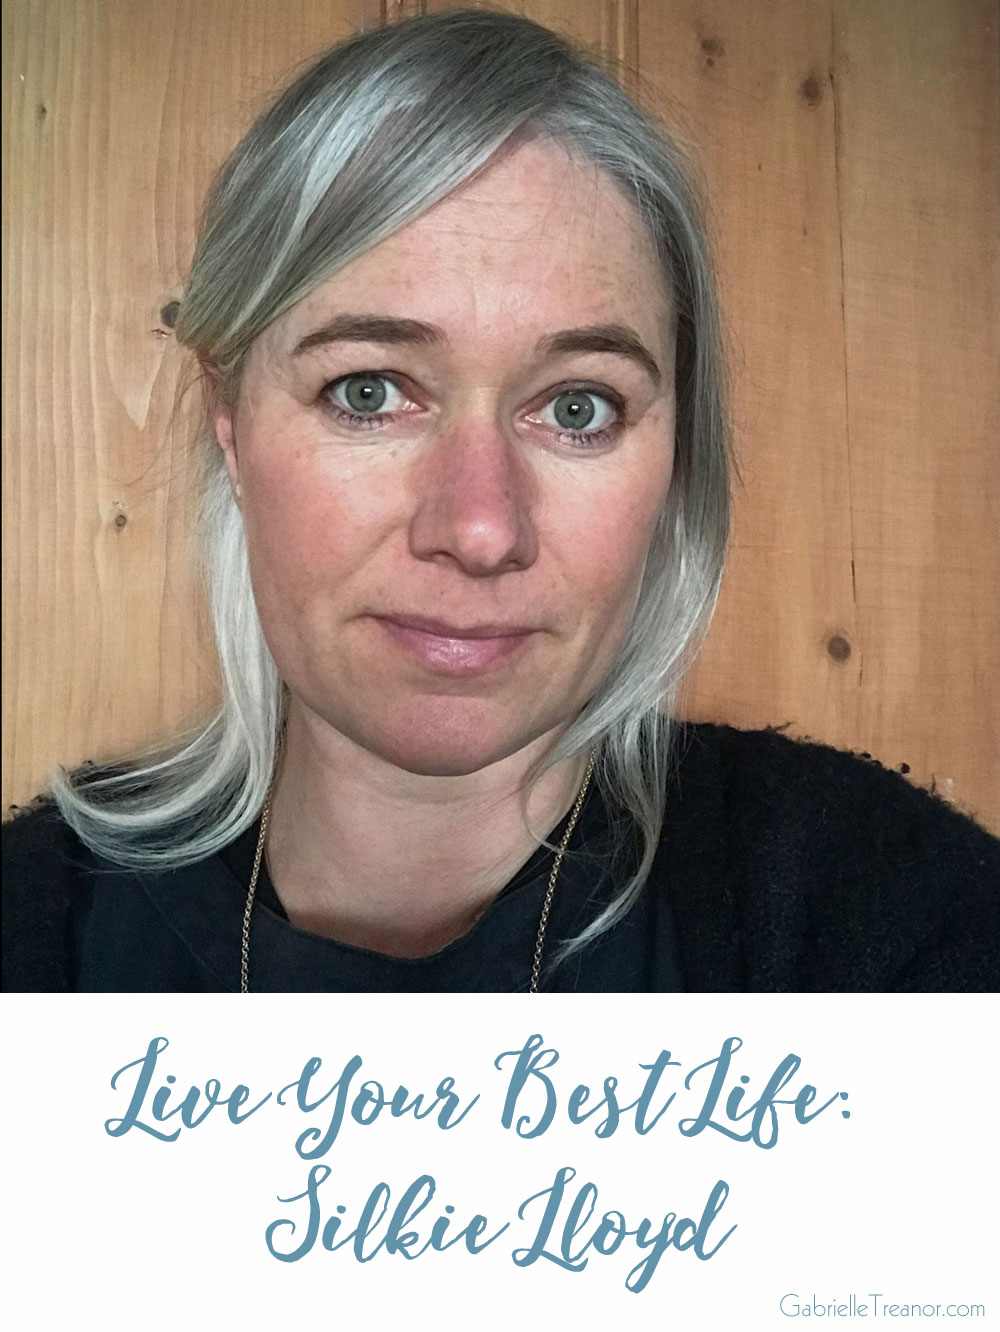 Live Your Best Life interview Silkie Lloyd